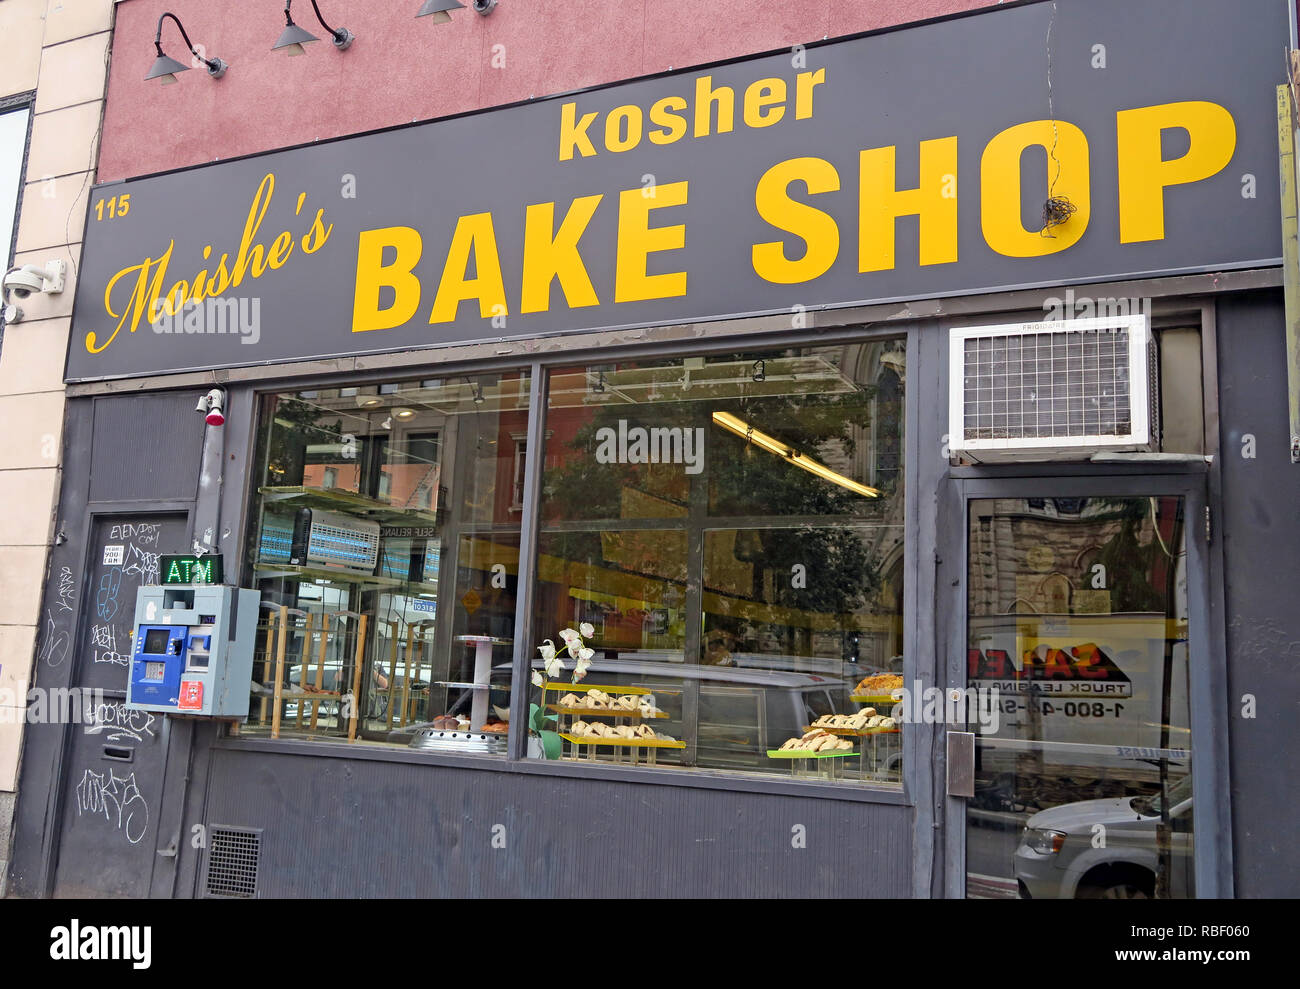 Moishes Kosher Bake Shop 115 2nd Ave, East Village, Manhattan, New York, NYC, USA - Stock Image